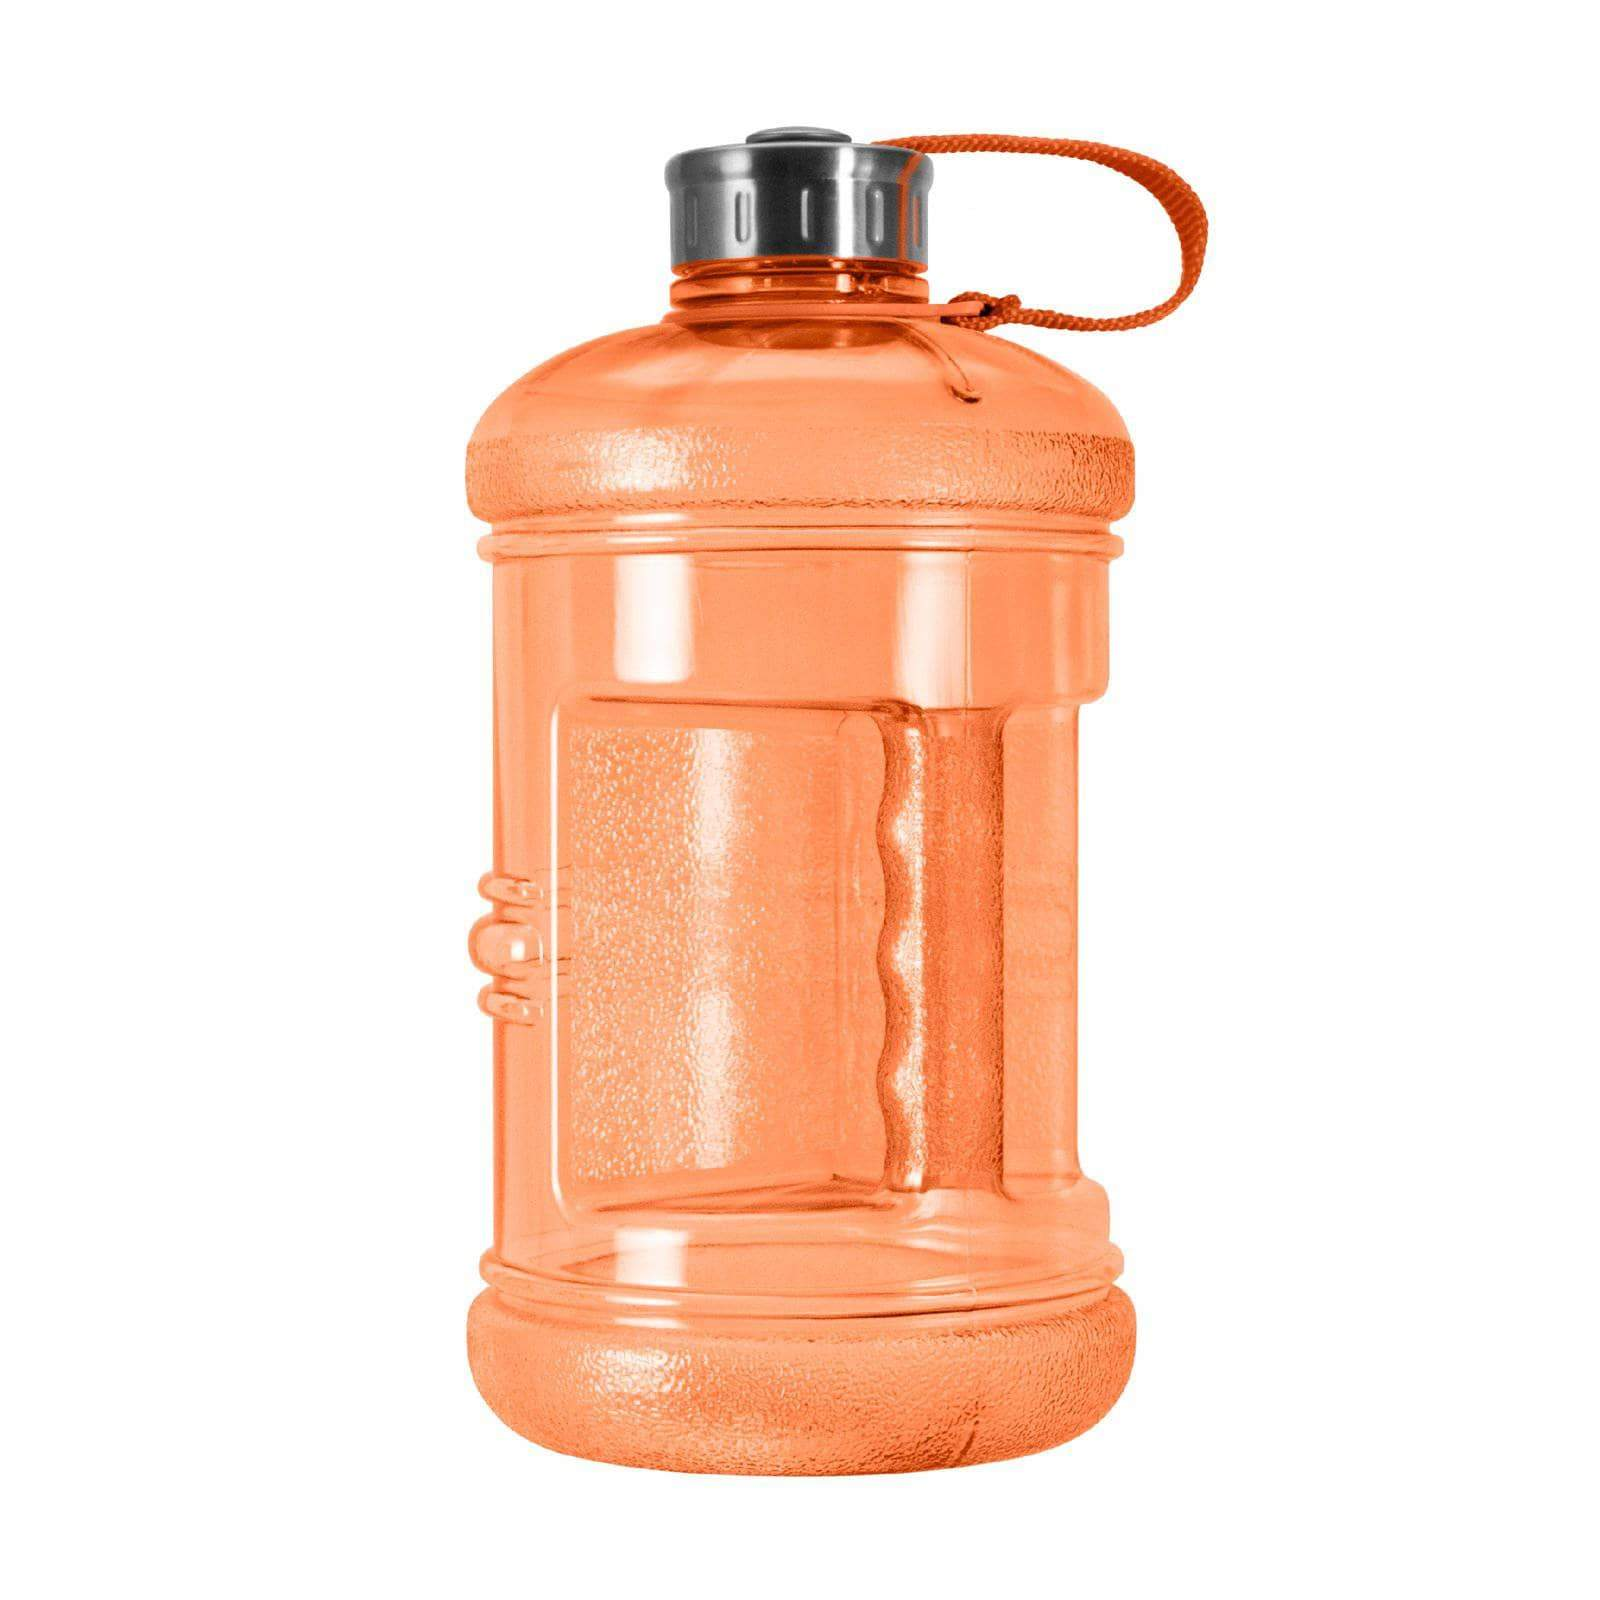 Geo Bottles Bottles Orange 2.3 Litter BPA FREE Bottle w/ Stainless Steel Cap